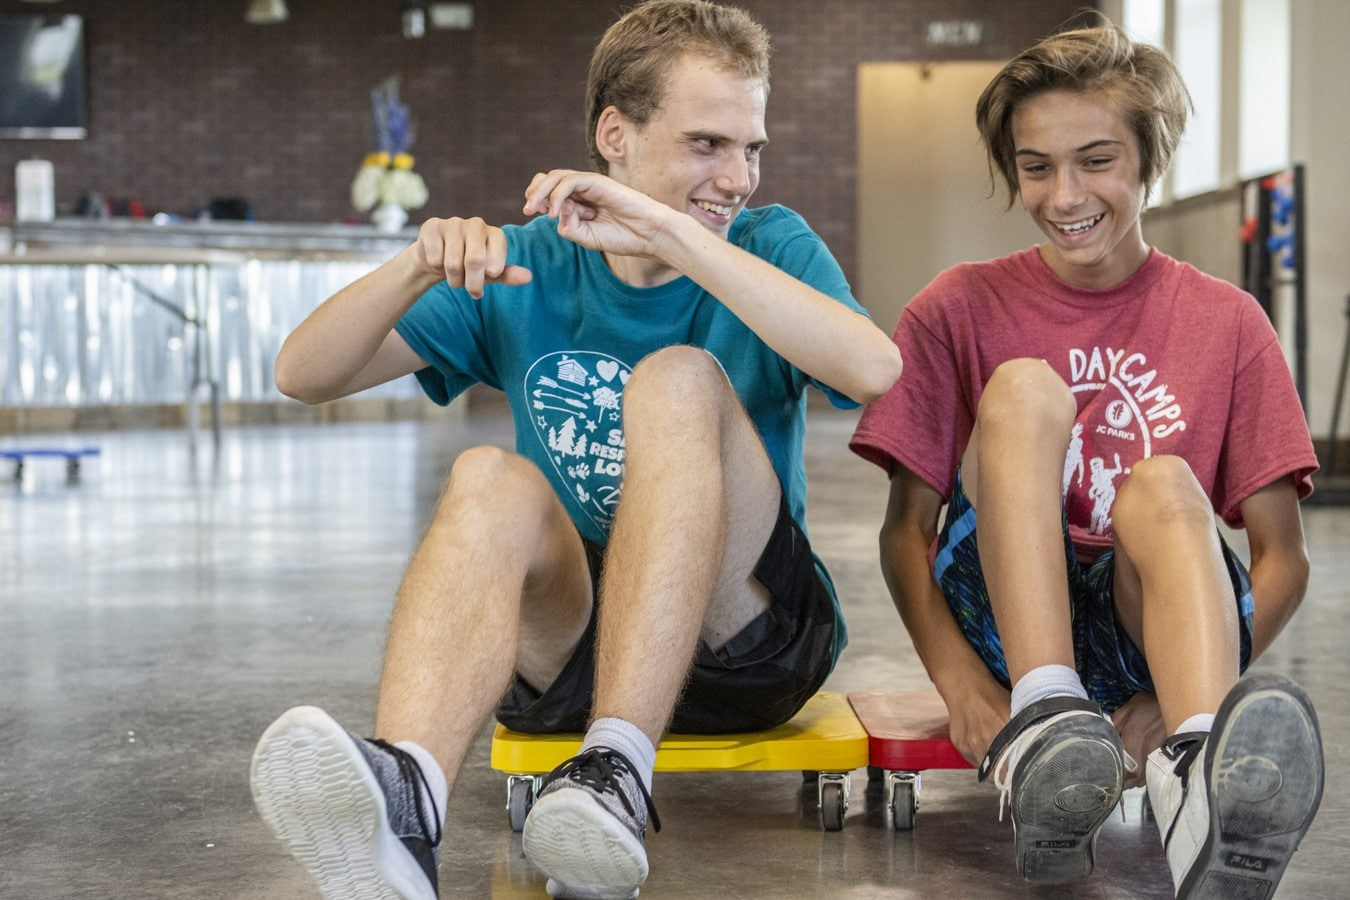 Athlete and volunteers smile as they sit on square scooter boards